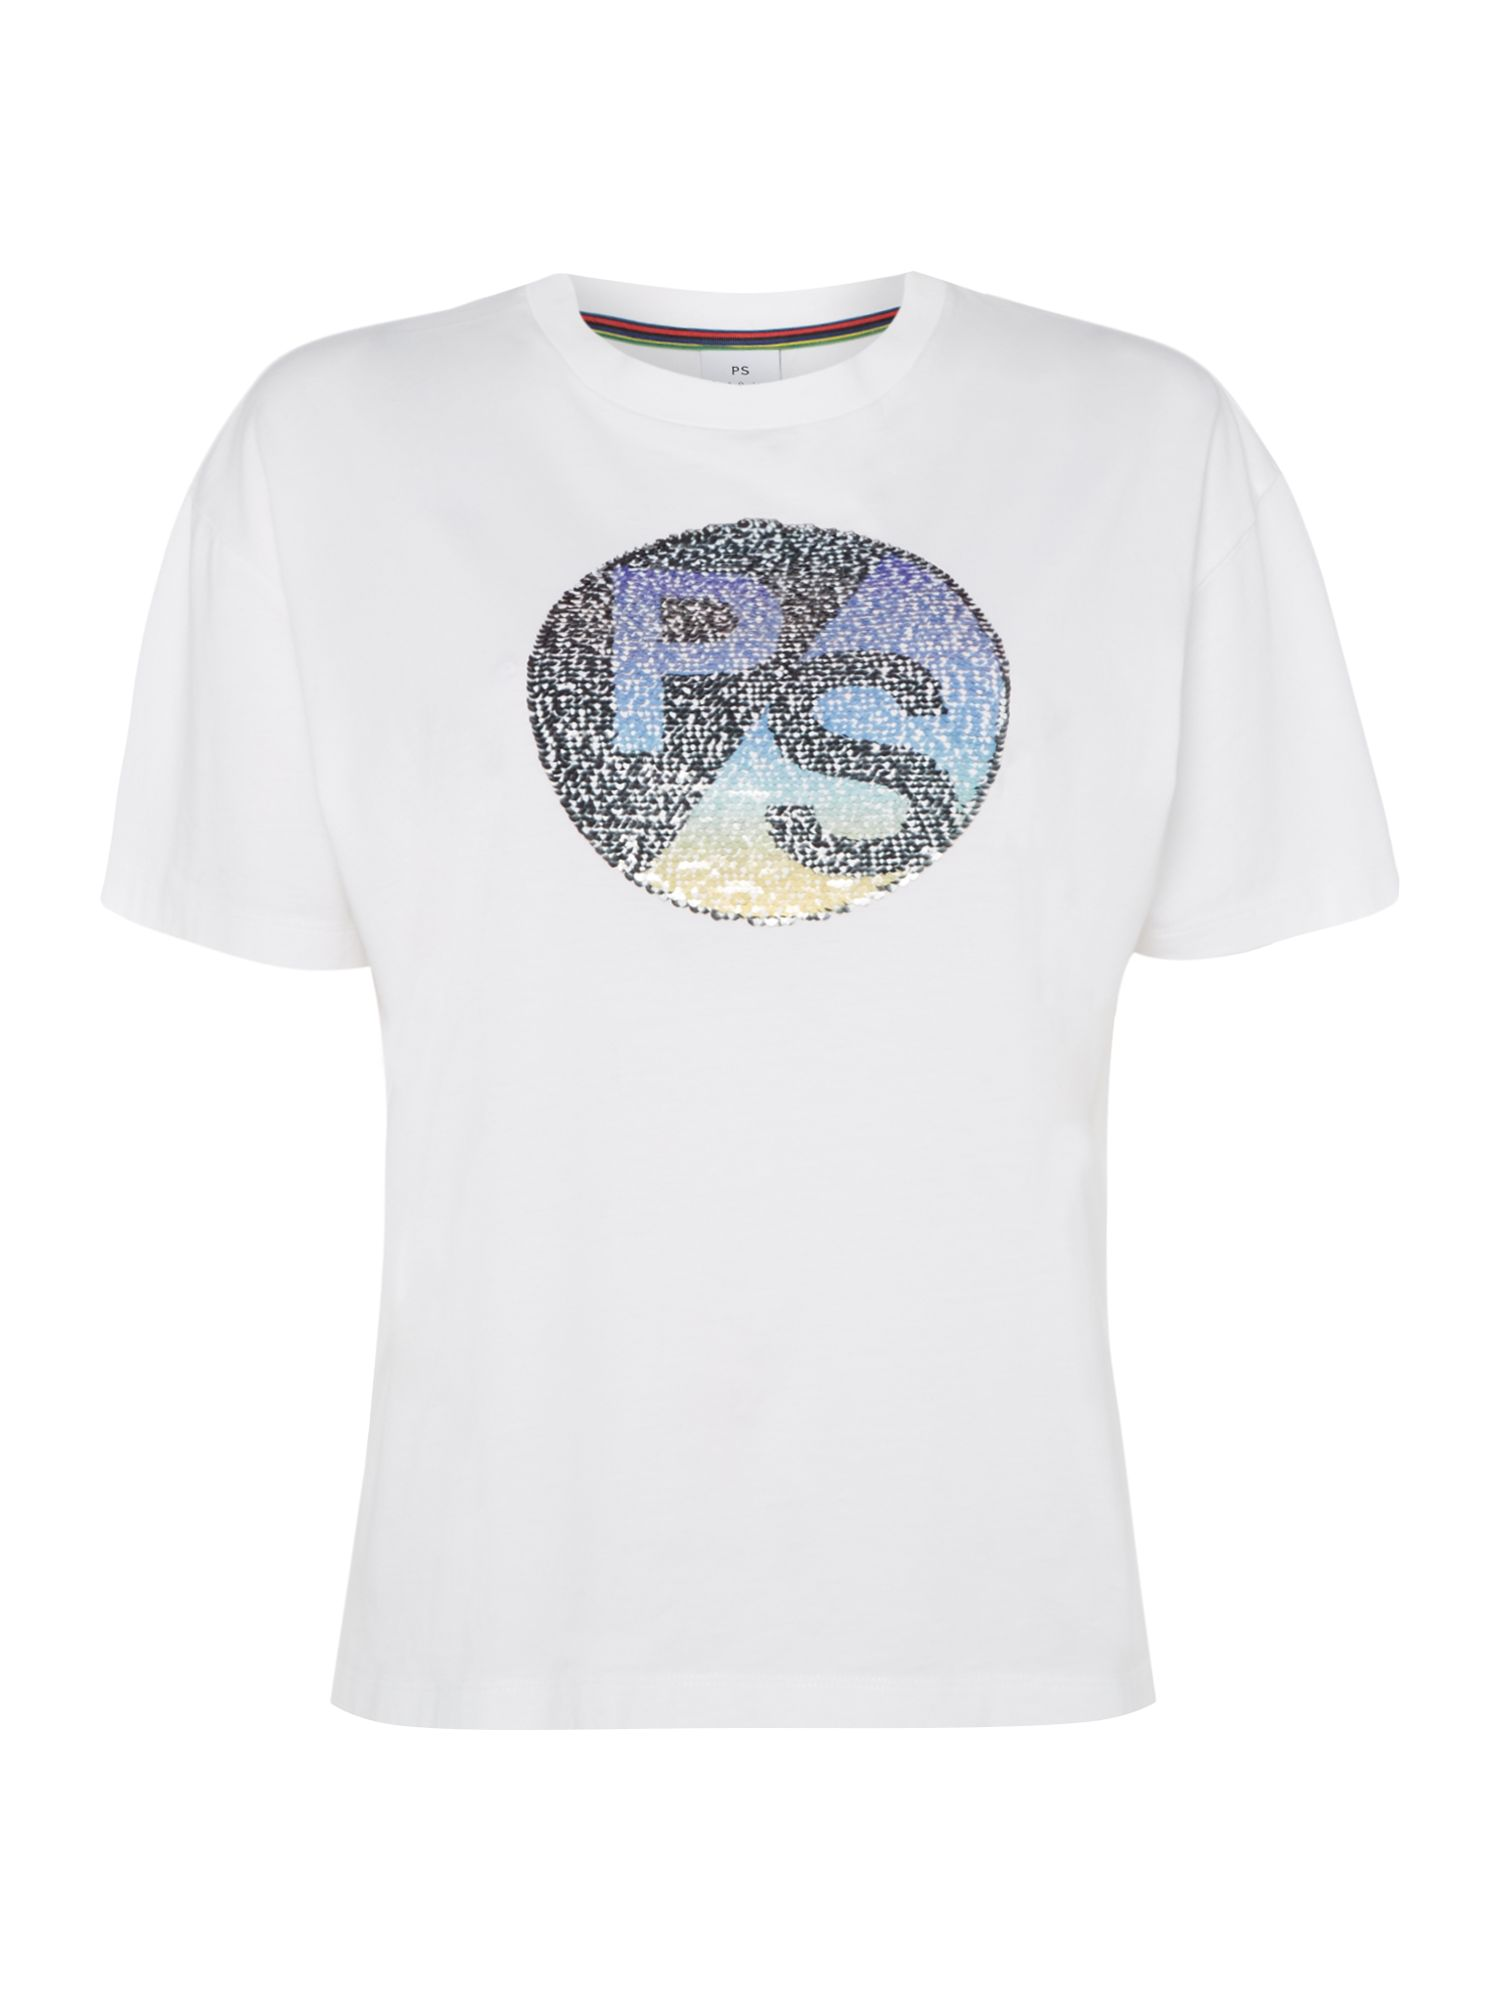 PS By Paul Smith PS sequin detail top, White